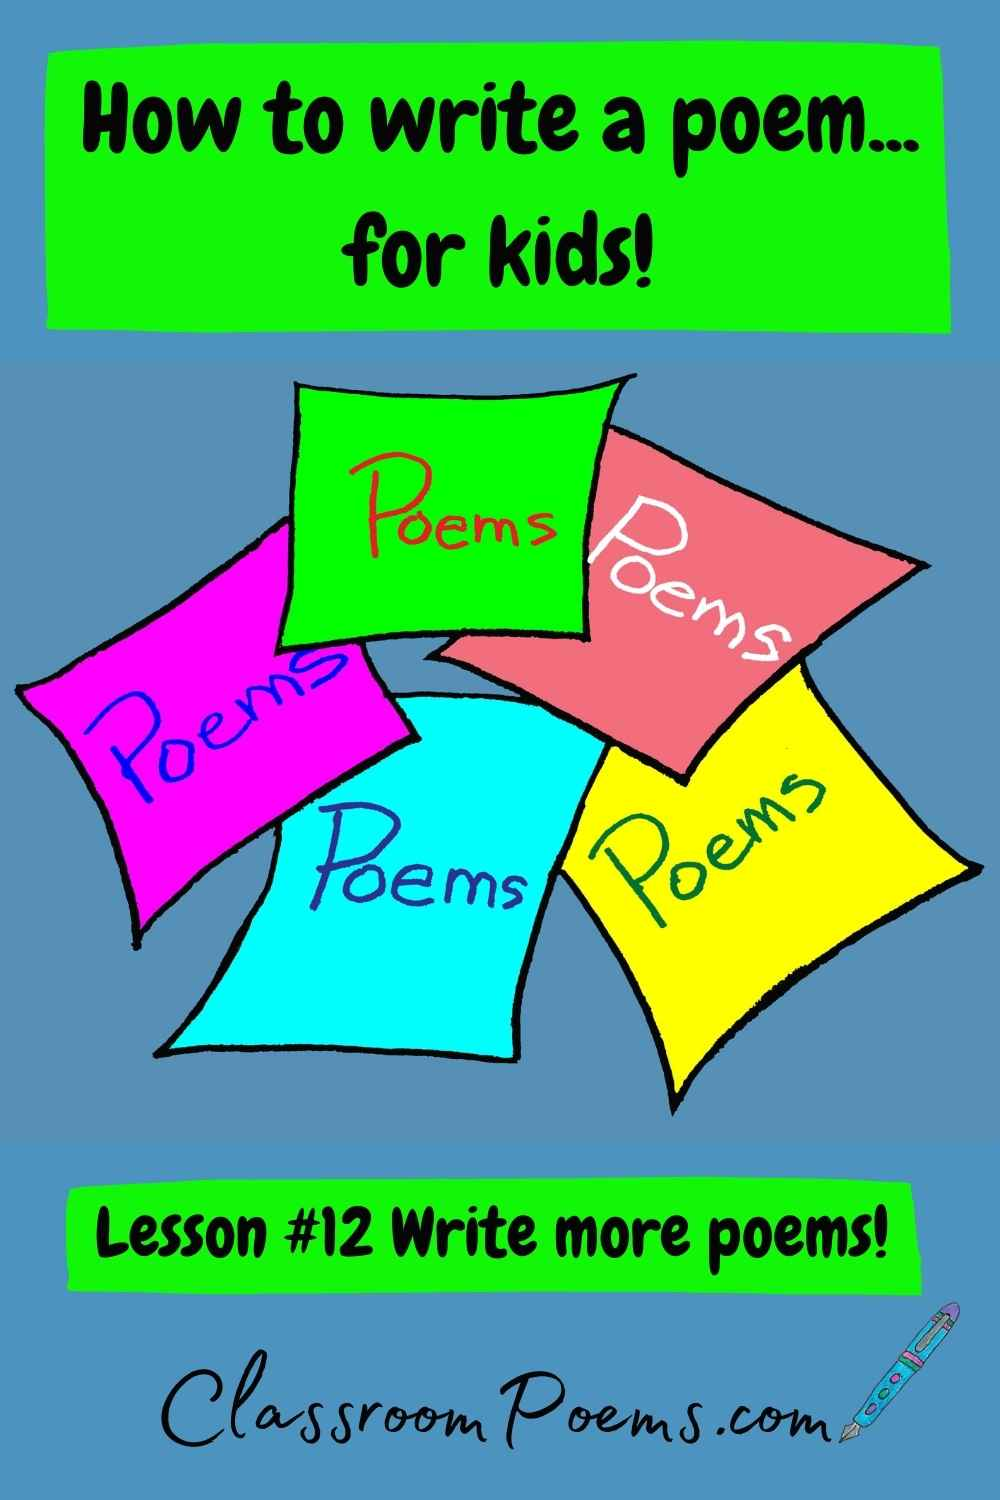 How to teach poetry to kids. Write more poems.